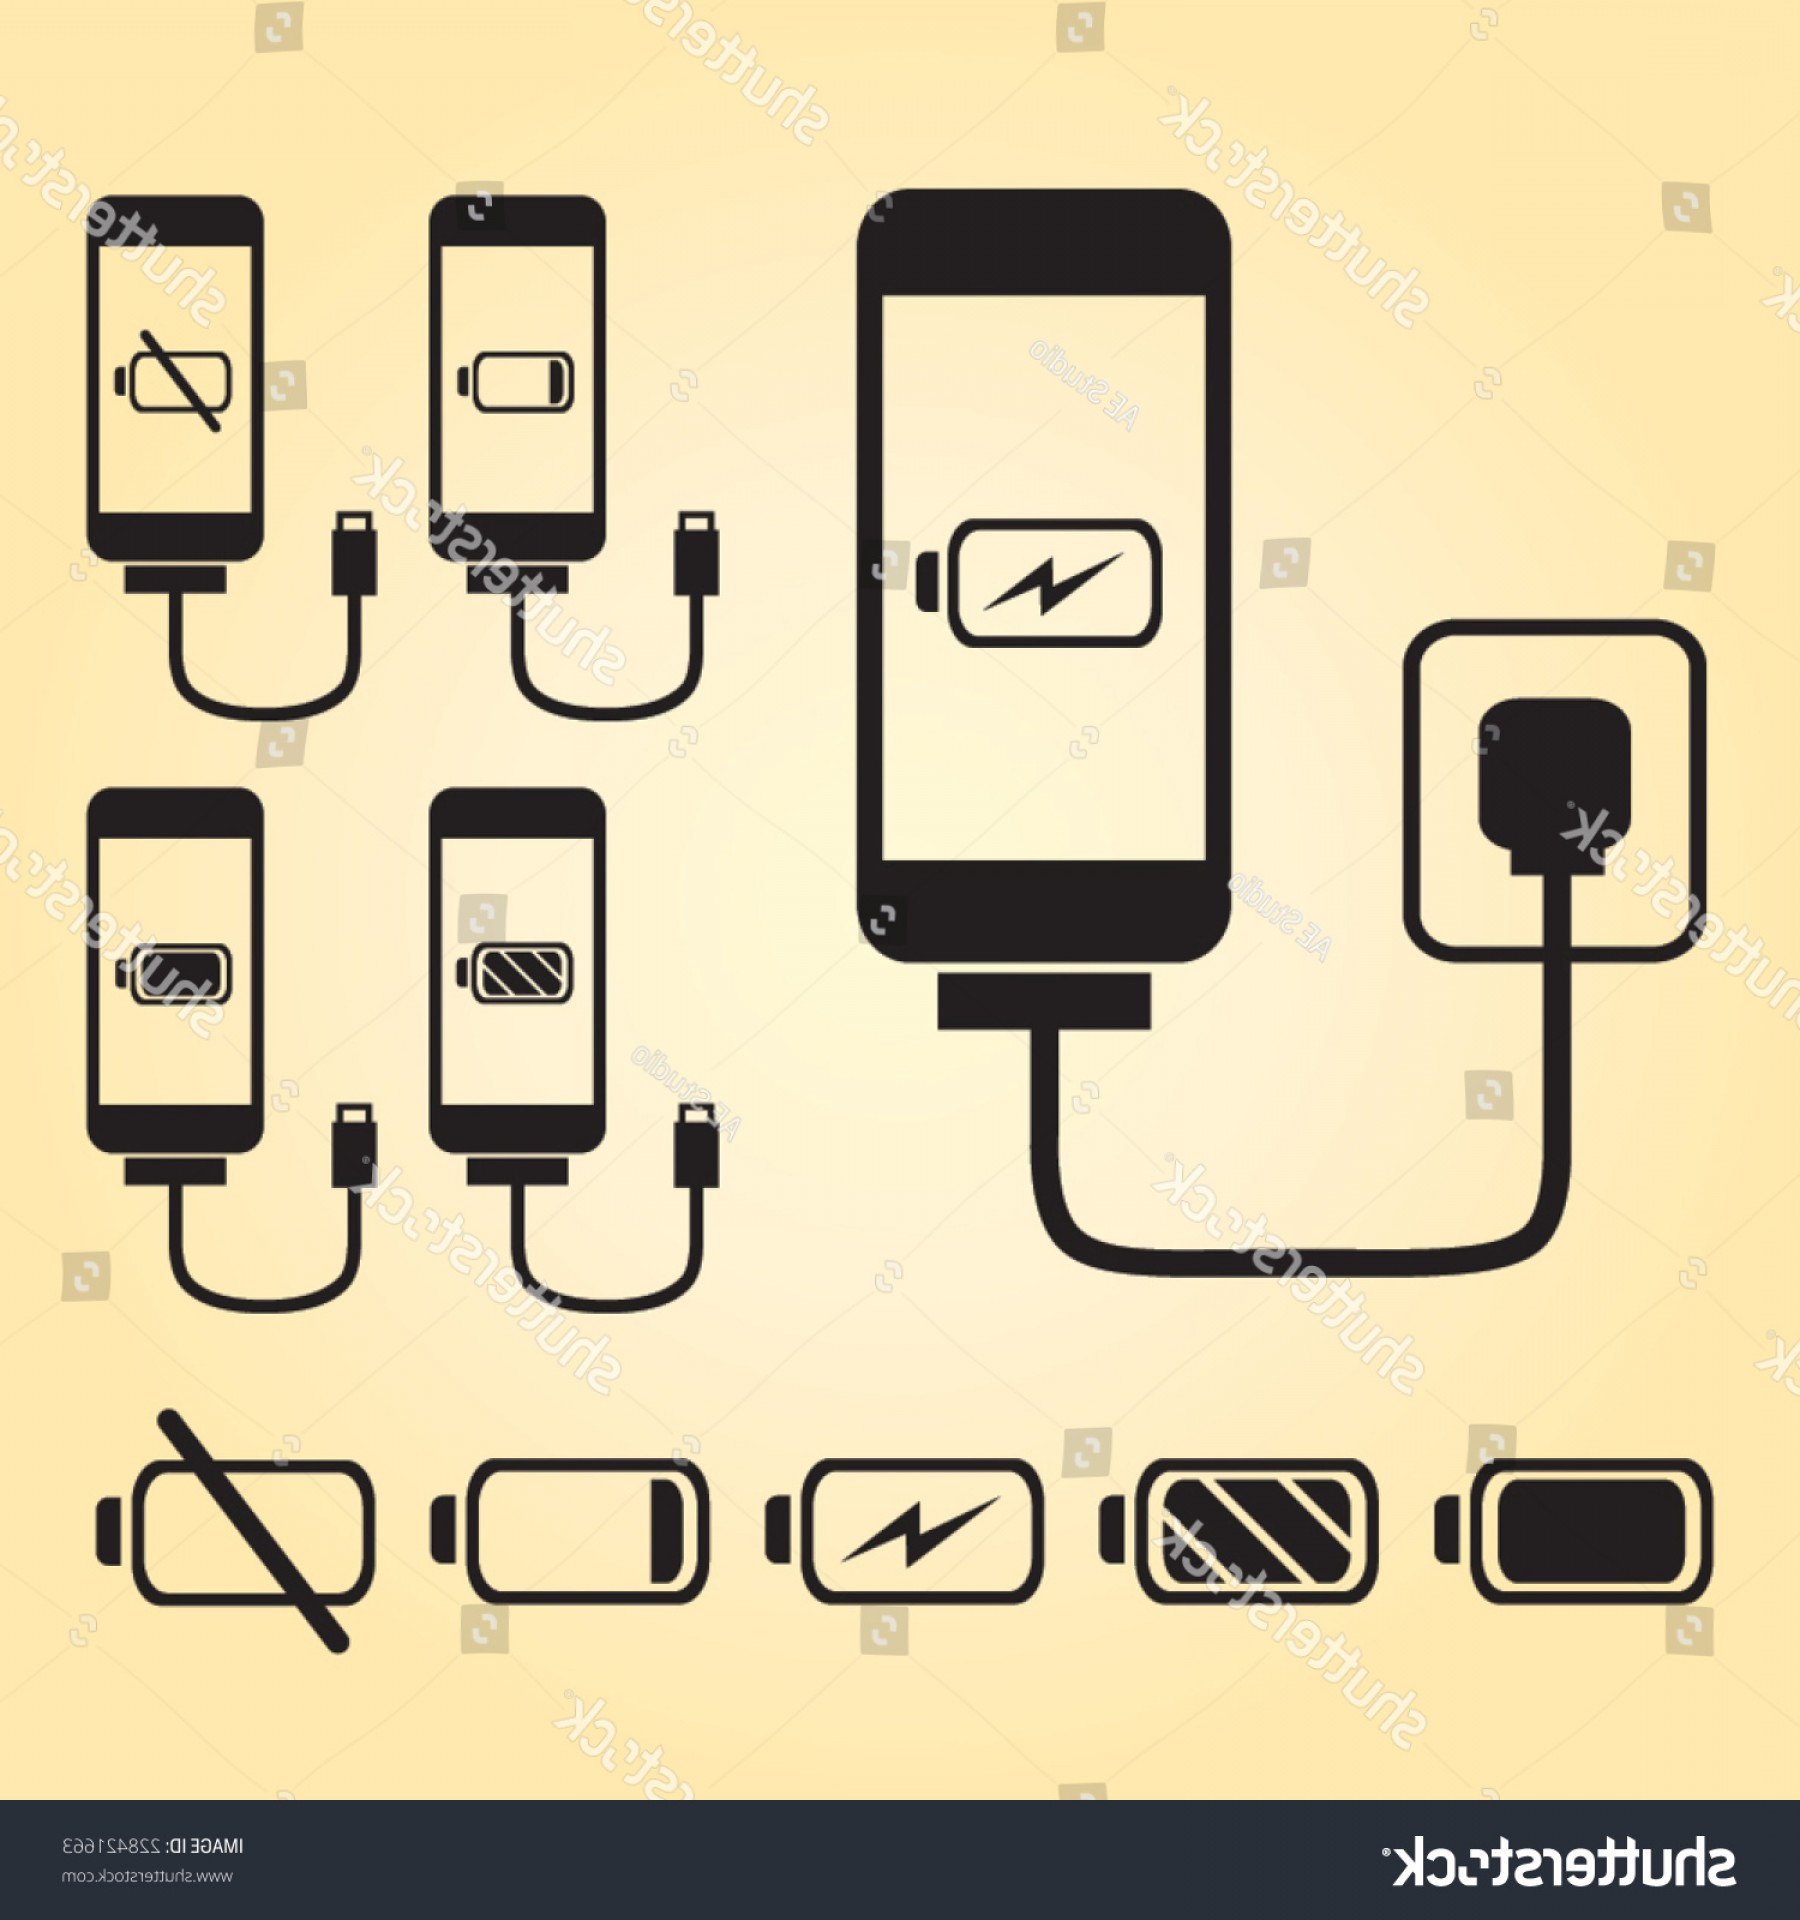 IPhone Battery Vector Icons: Smart Phone Iphone Charge Battery Indicator